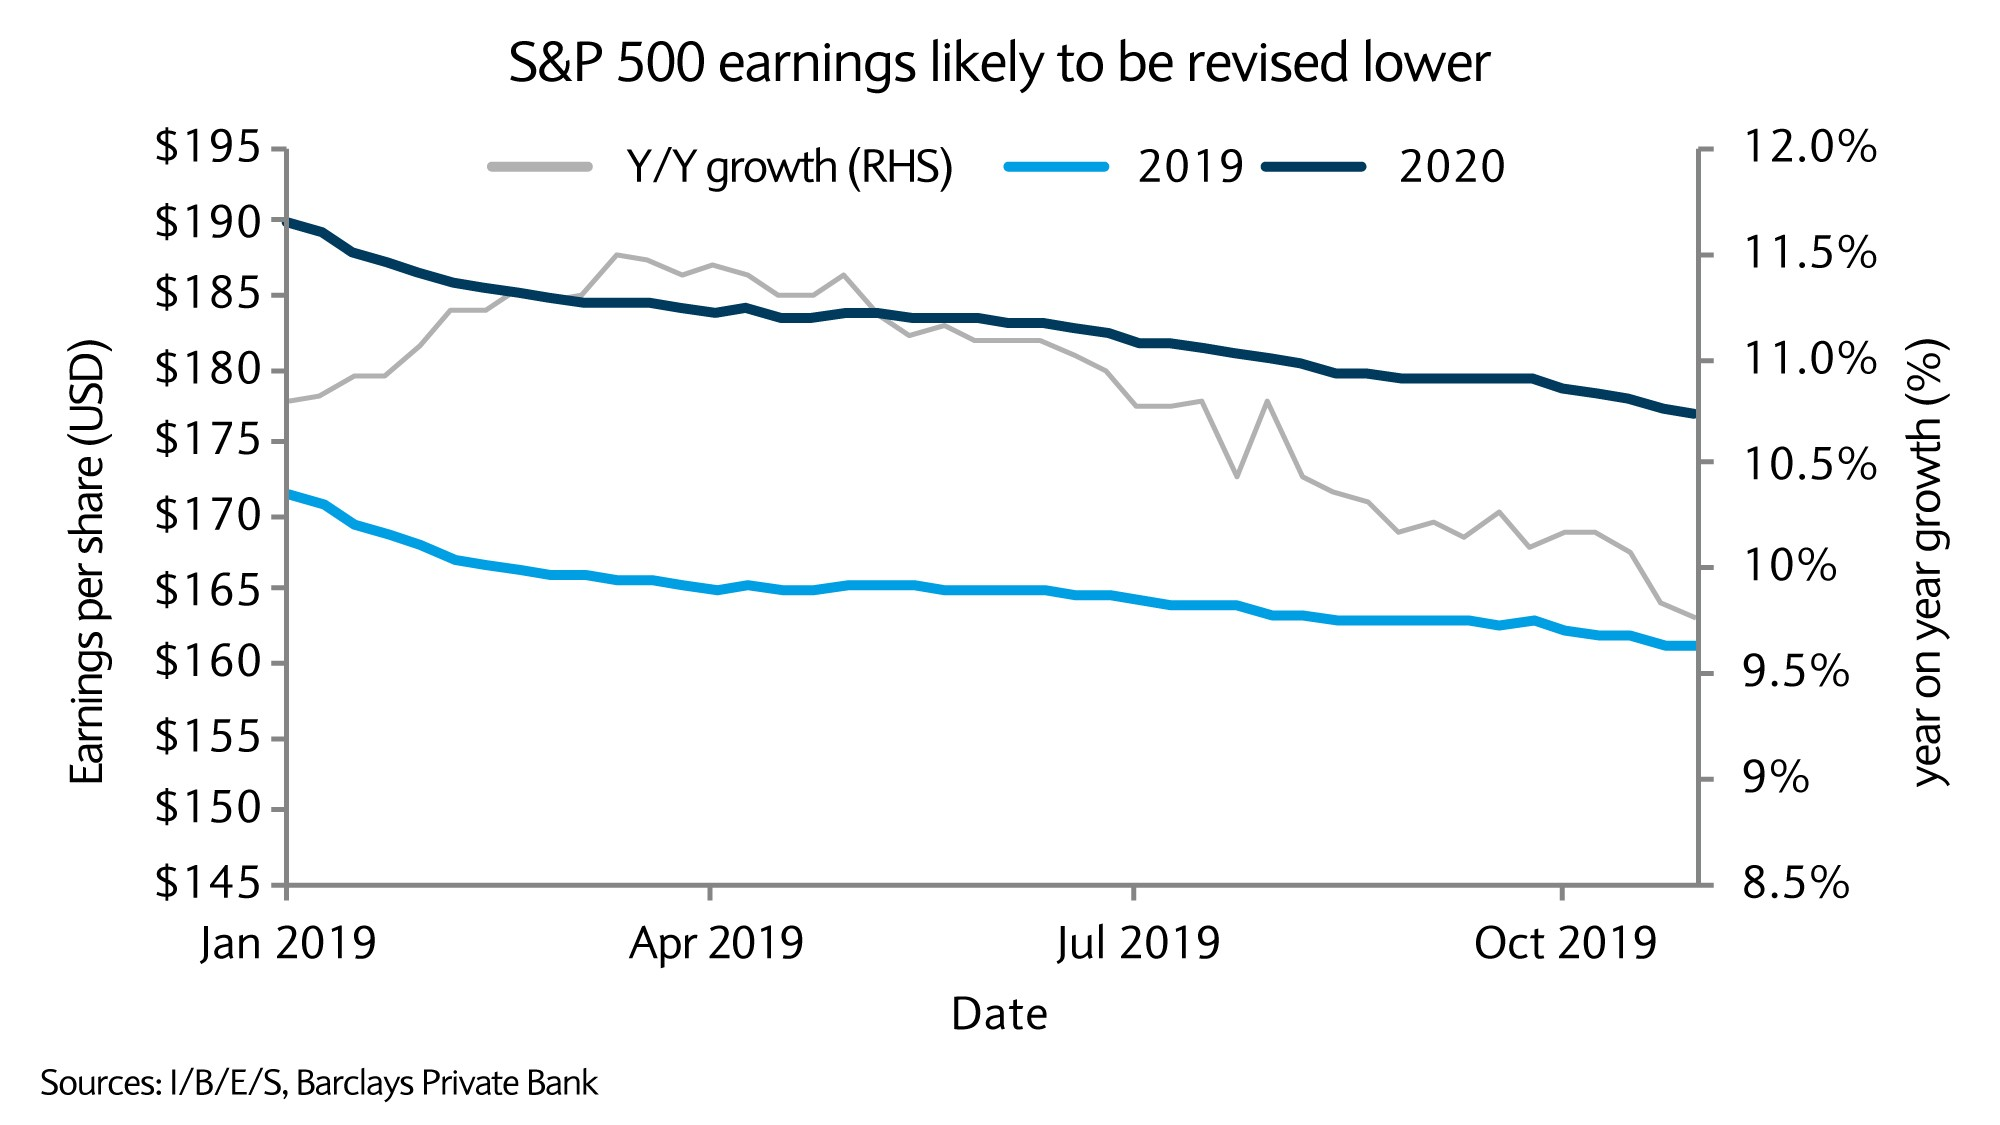 S and P 500 earnings likely to be revised lower